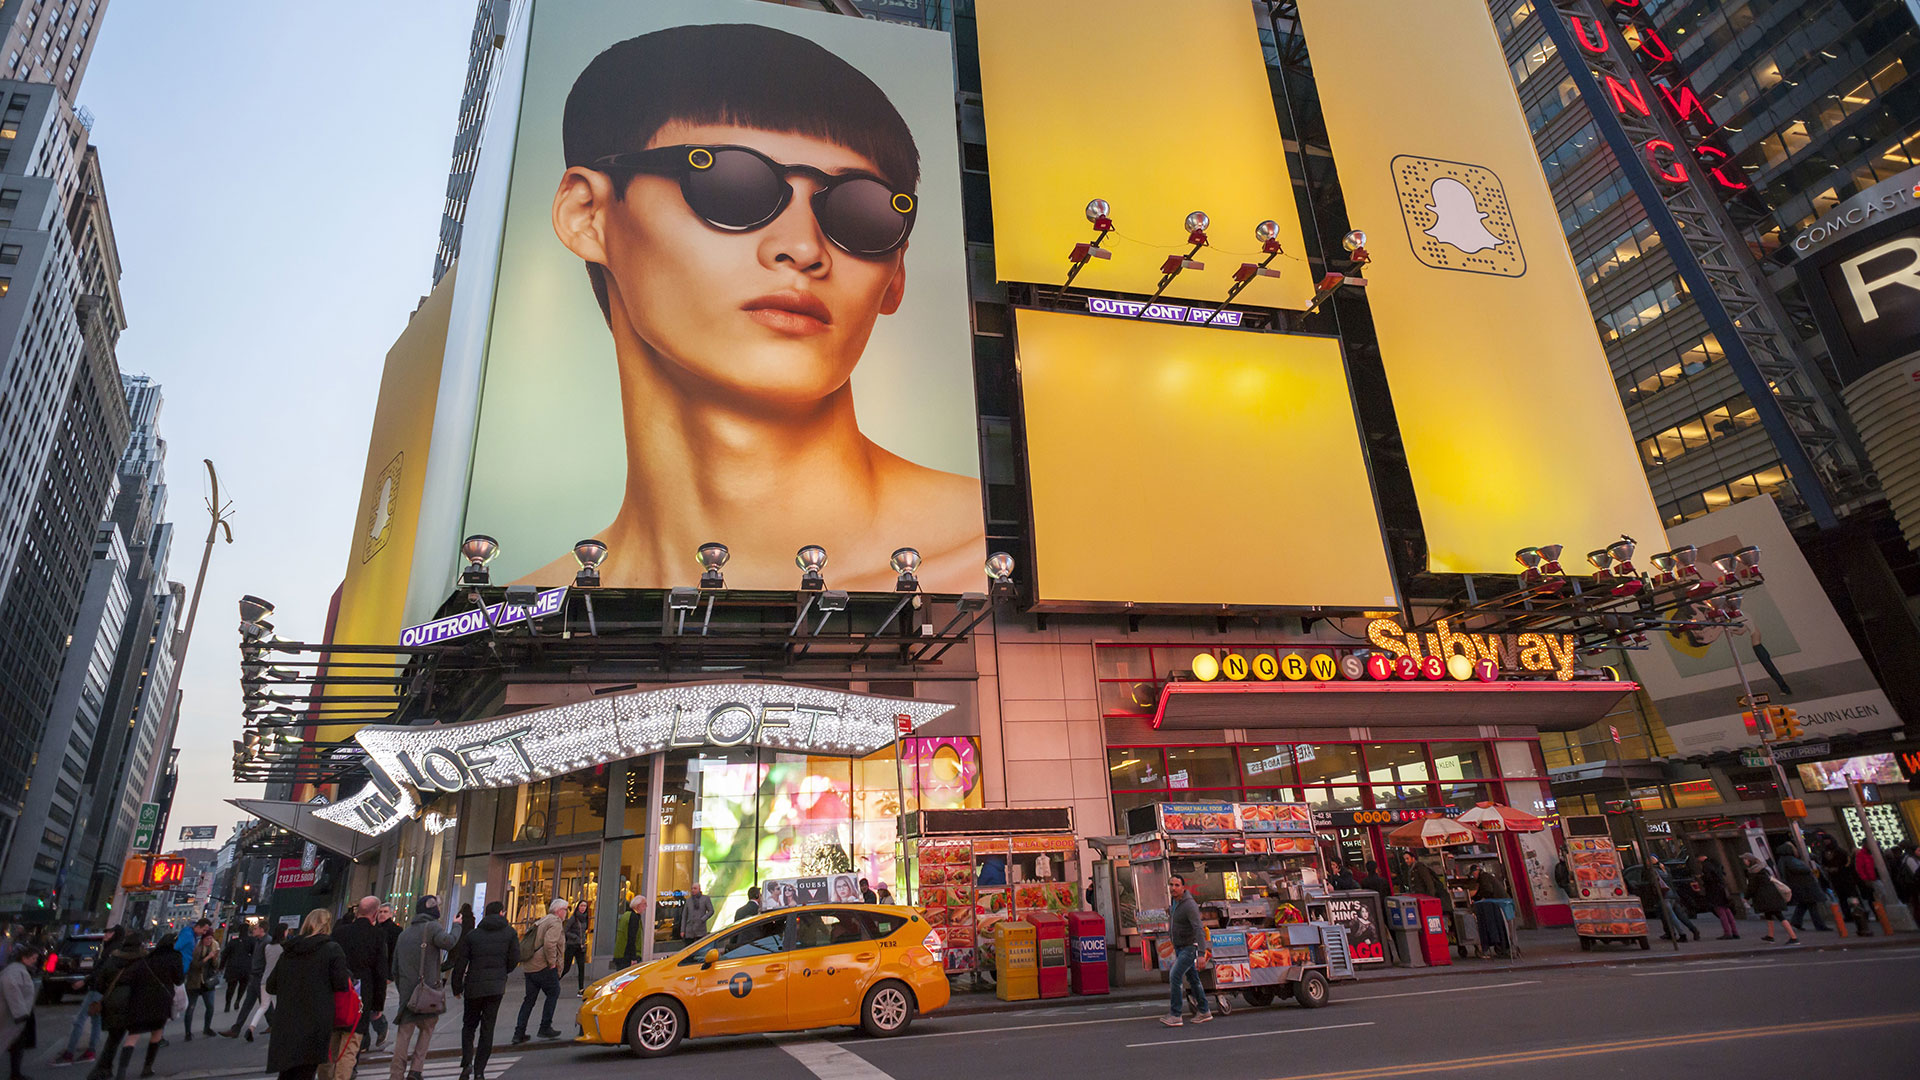 Spectacles-Werbung am Times Square